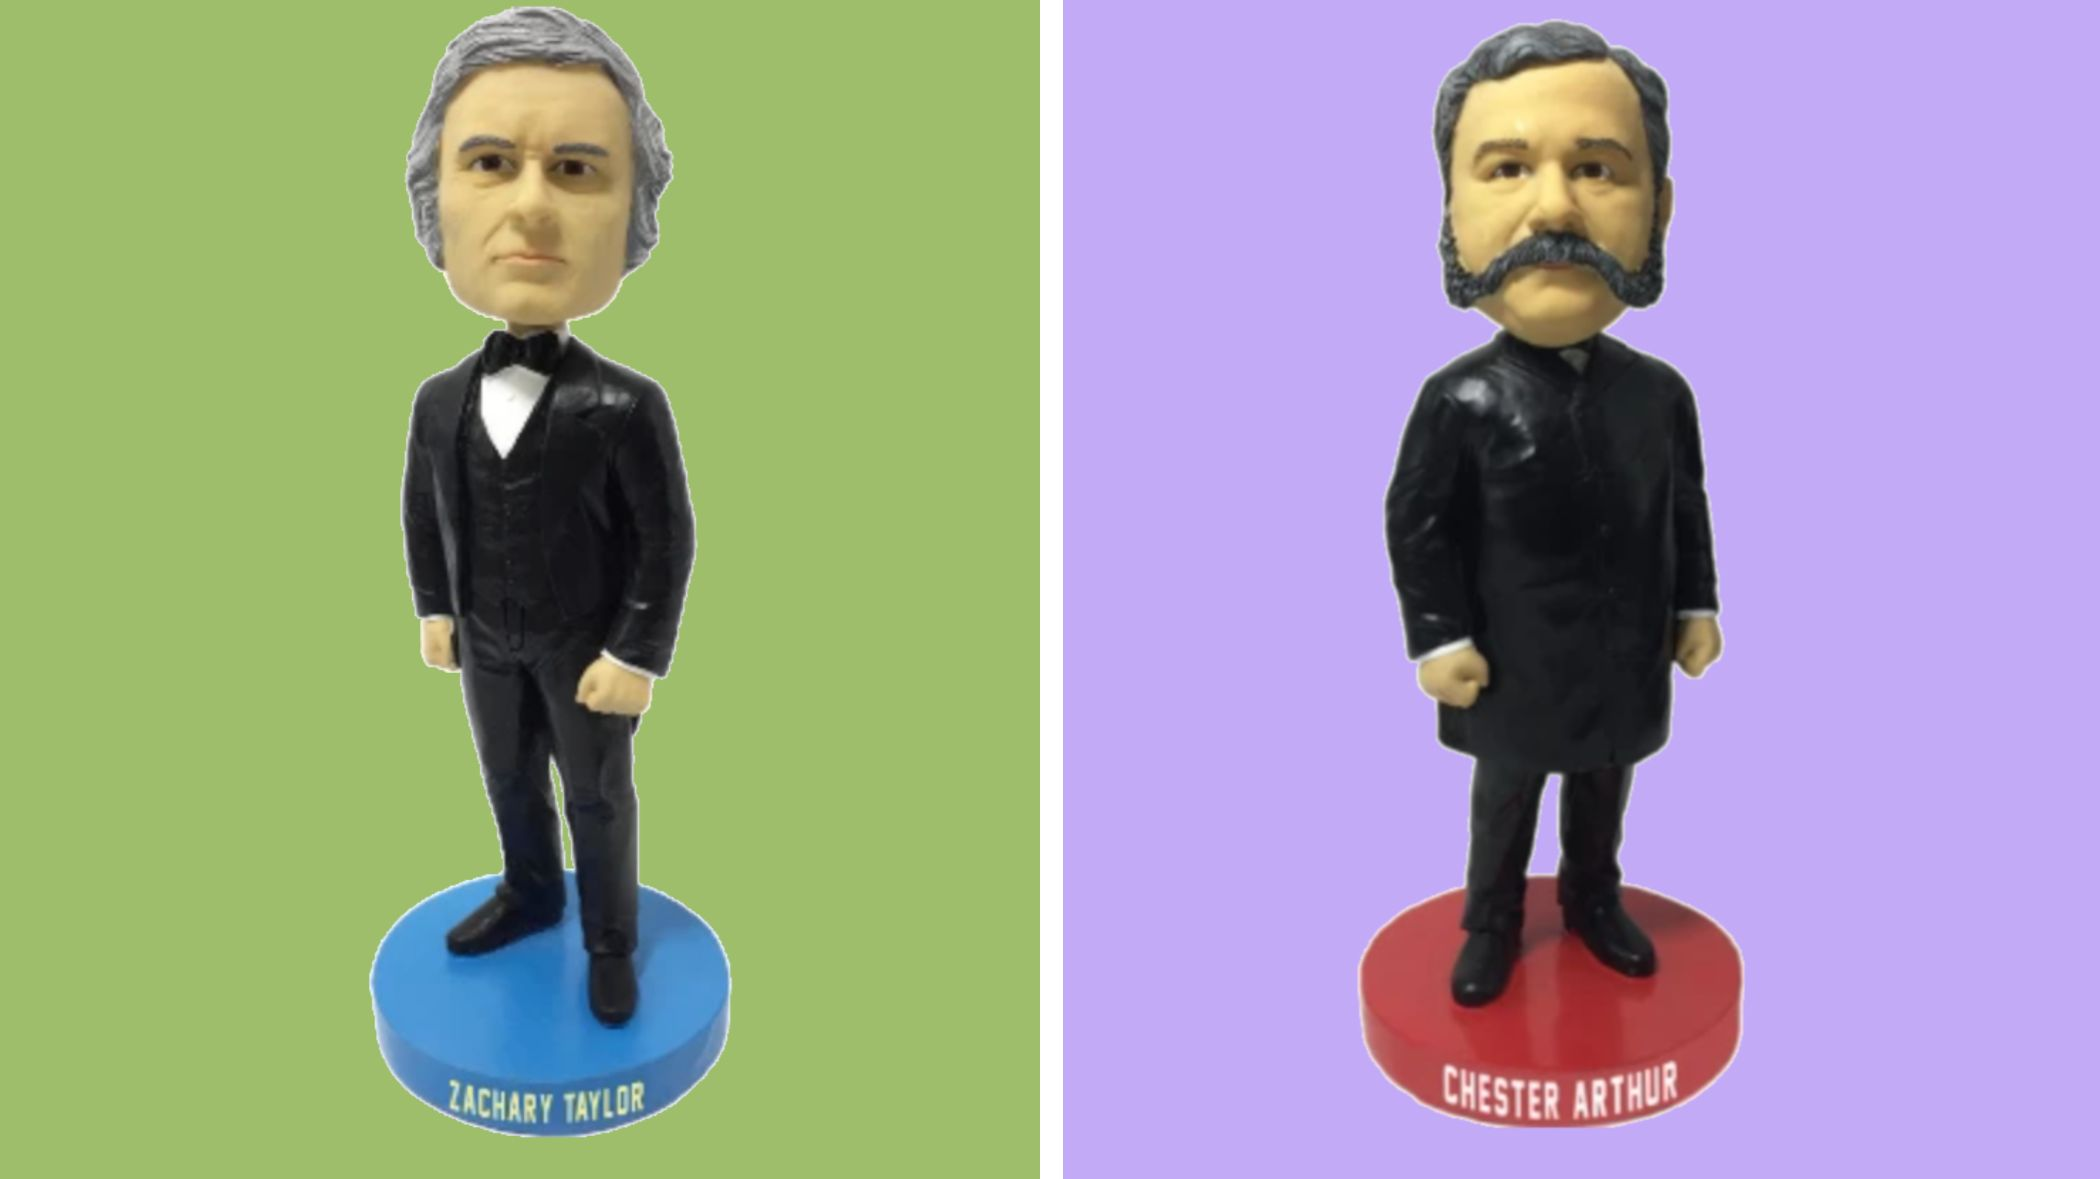 These Neglected Presidents Are Getting the Bobblehead Treatment They so Richly Deserve